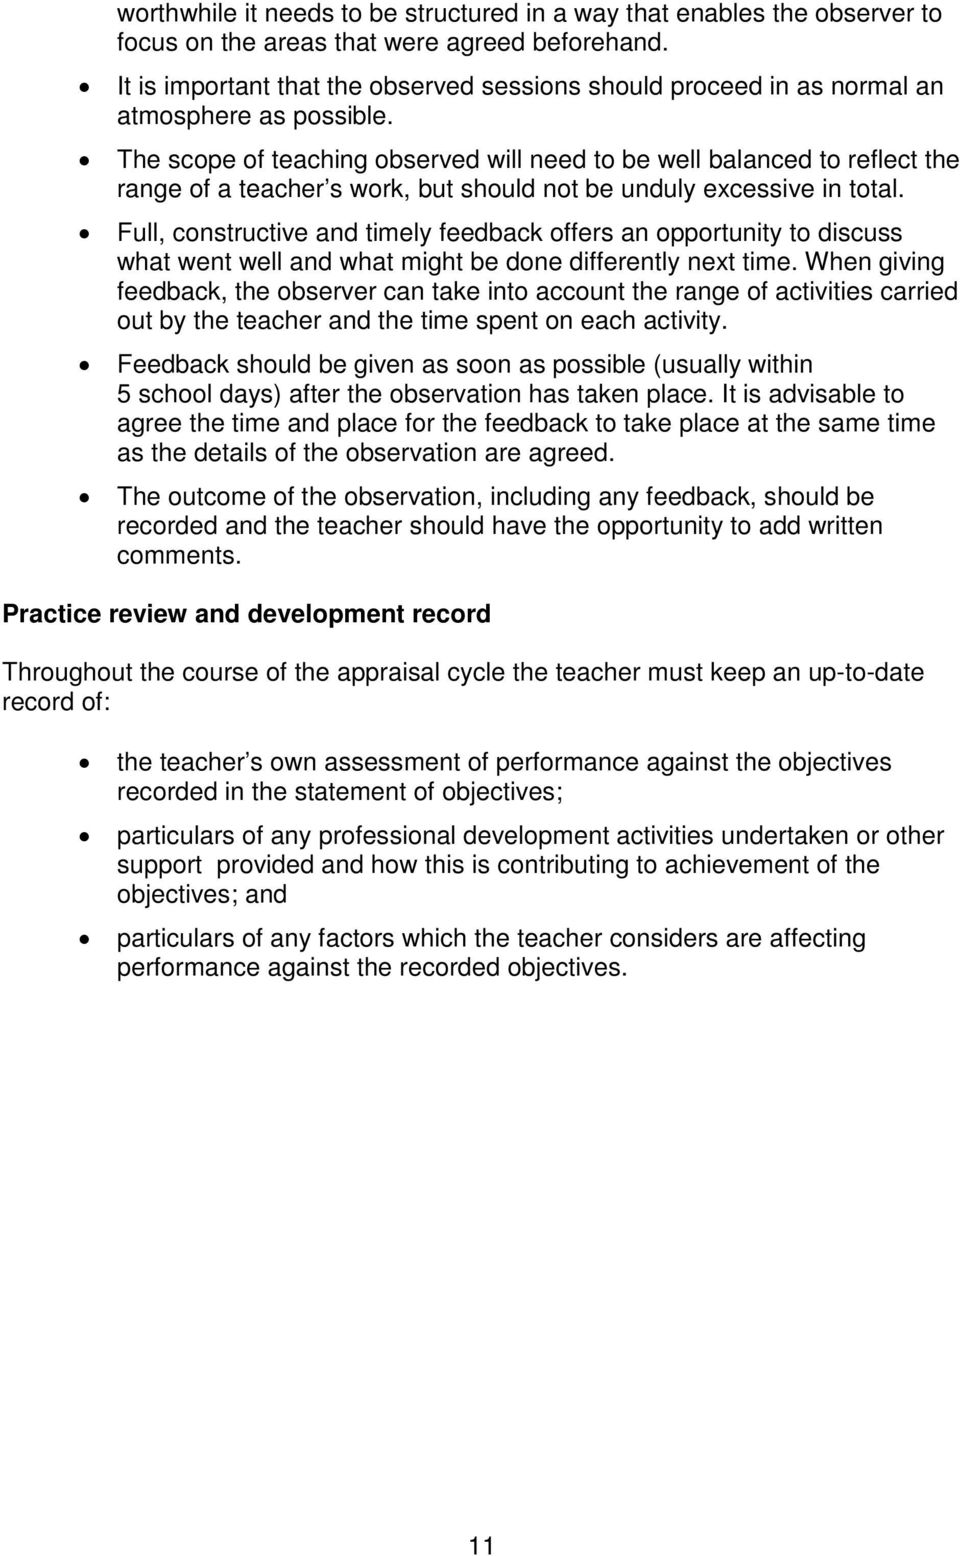 The scope of teaching observed will need to be well balanced to reflect the range of a teacher s work, but should not be unduly excessive in total.